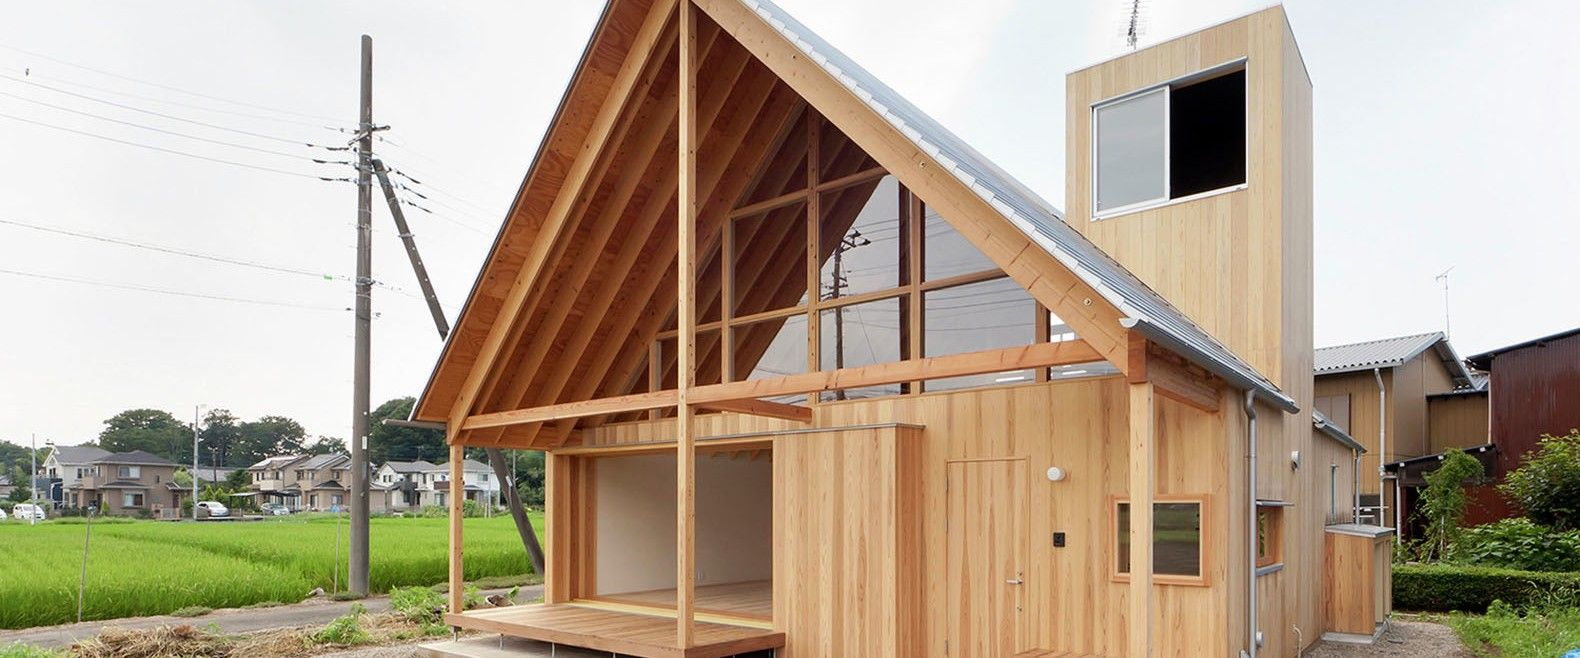 Charming timber home in Japan features an Africaninspired